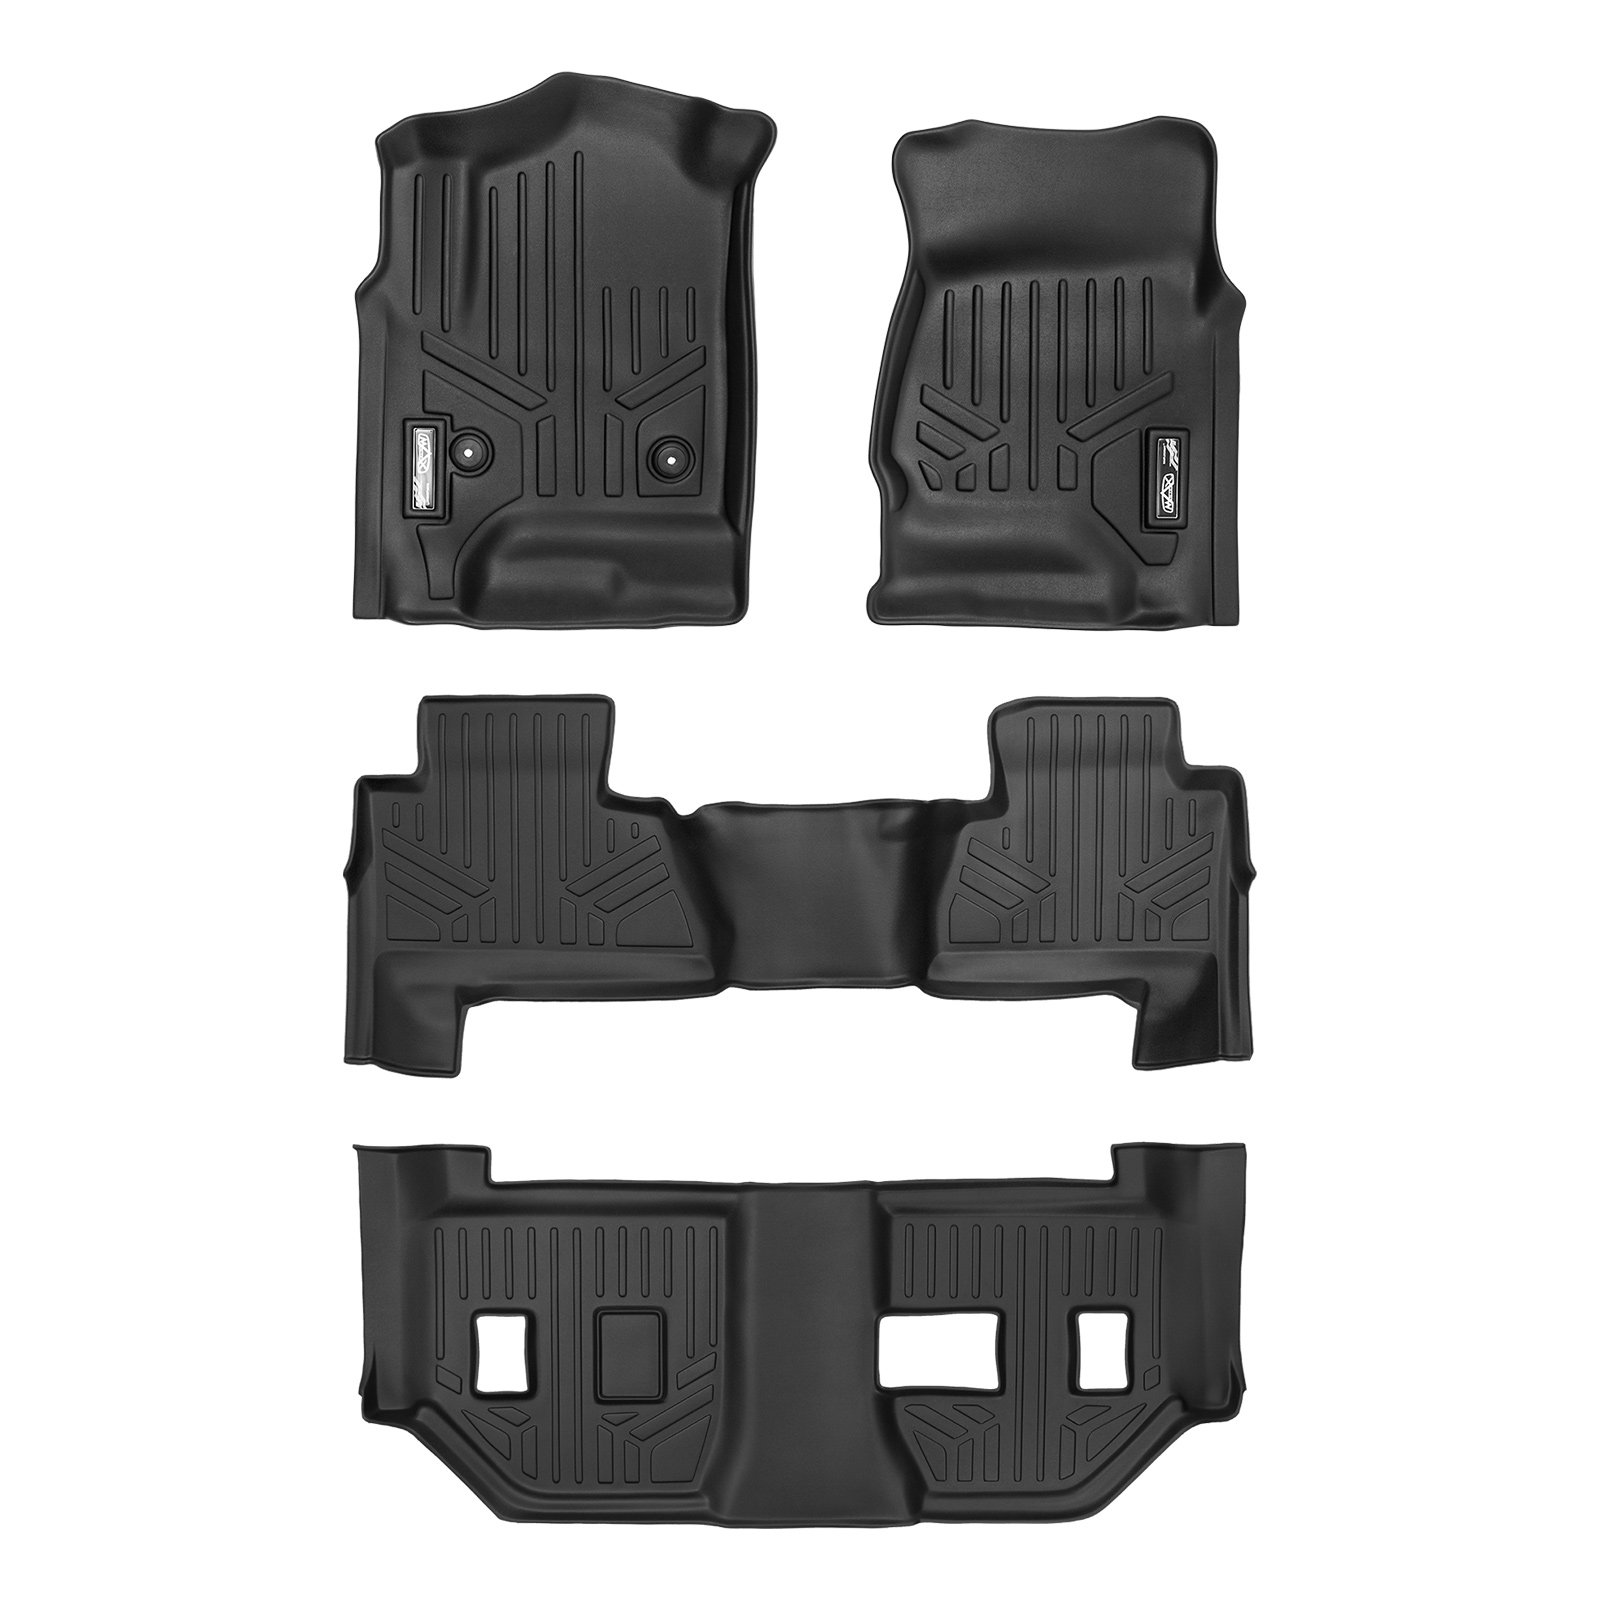 SMARTLINER Floor Mats 3 Row Liner Set Black for 2015-2018 Chevrolet Suburban / GMC Yukon XL (with 2nd Row Bench Seat)